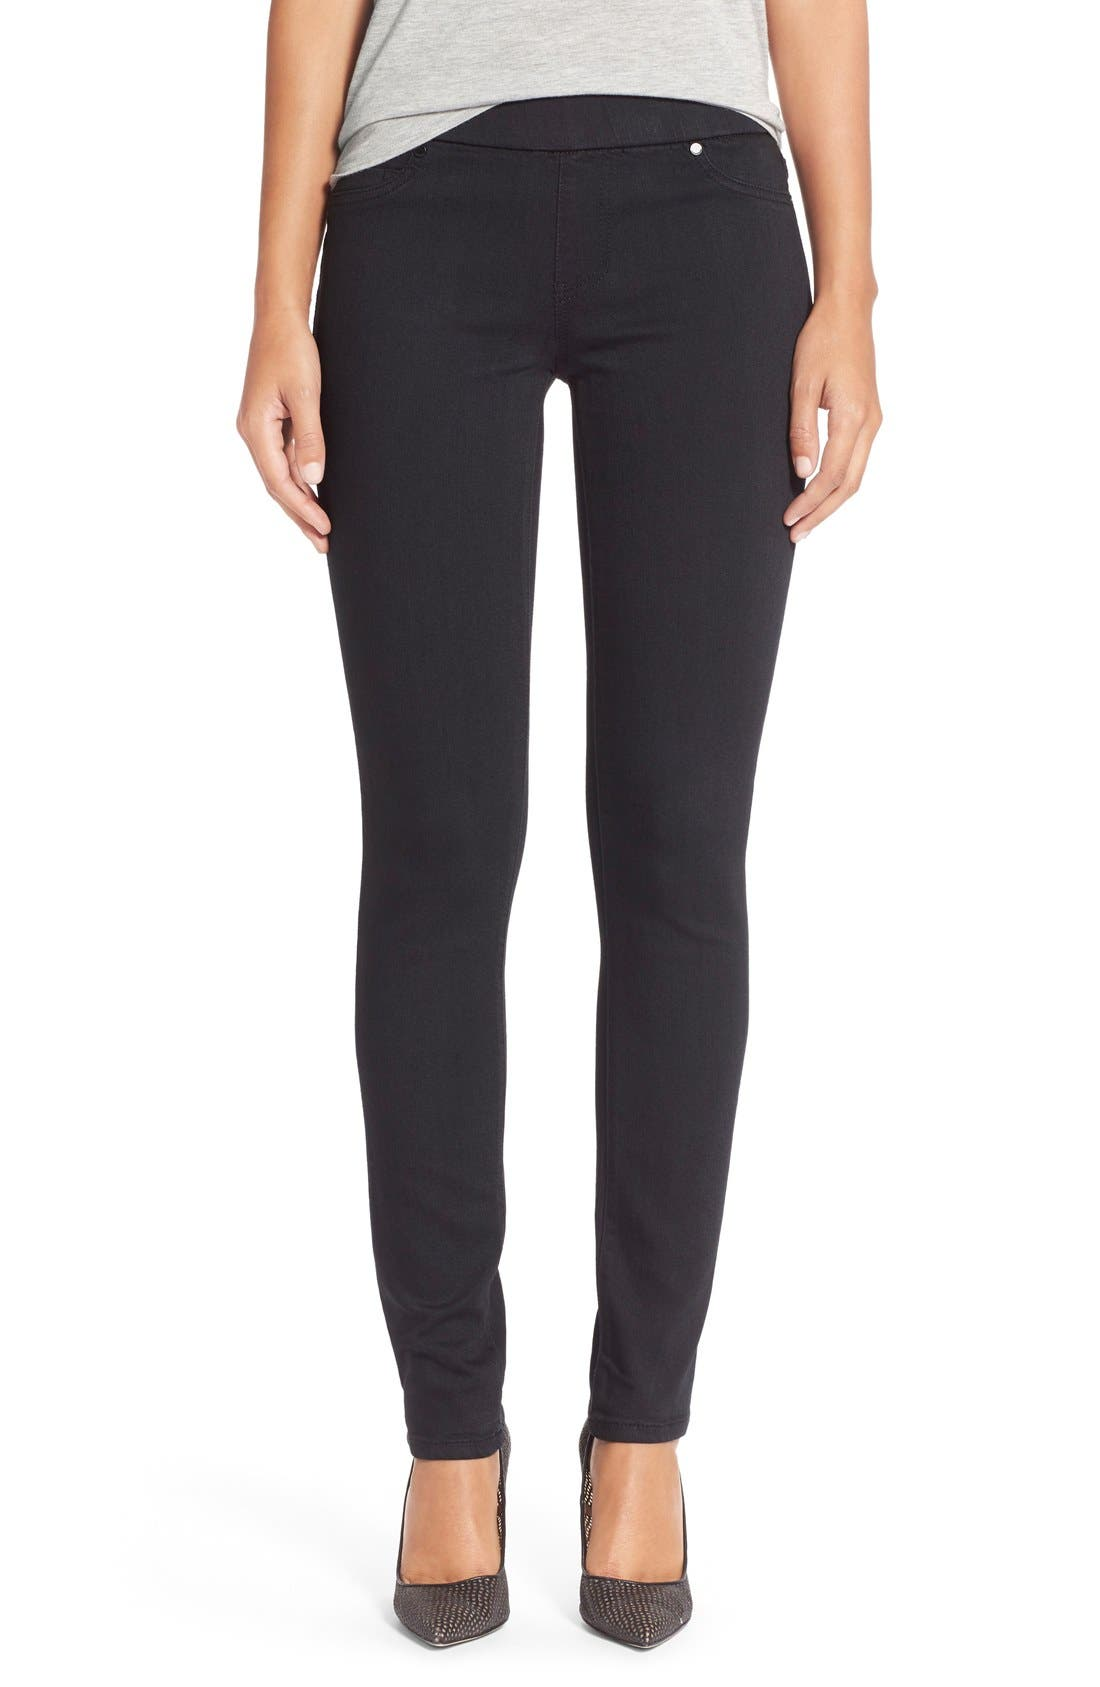 Alternate Image 1 Selected - Liverpool Jeans Company 'Sienna' Pull-On Knit Denim Leggings (Petite)